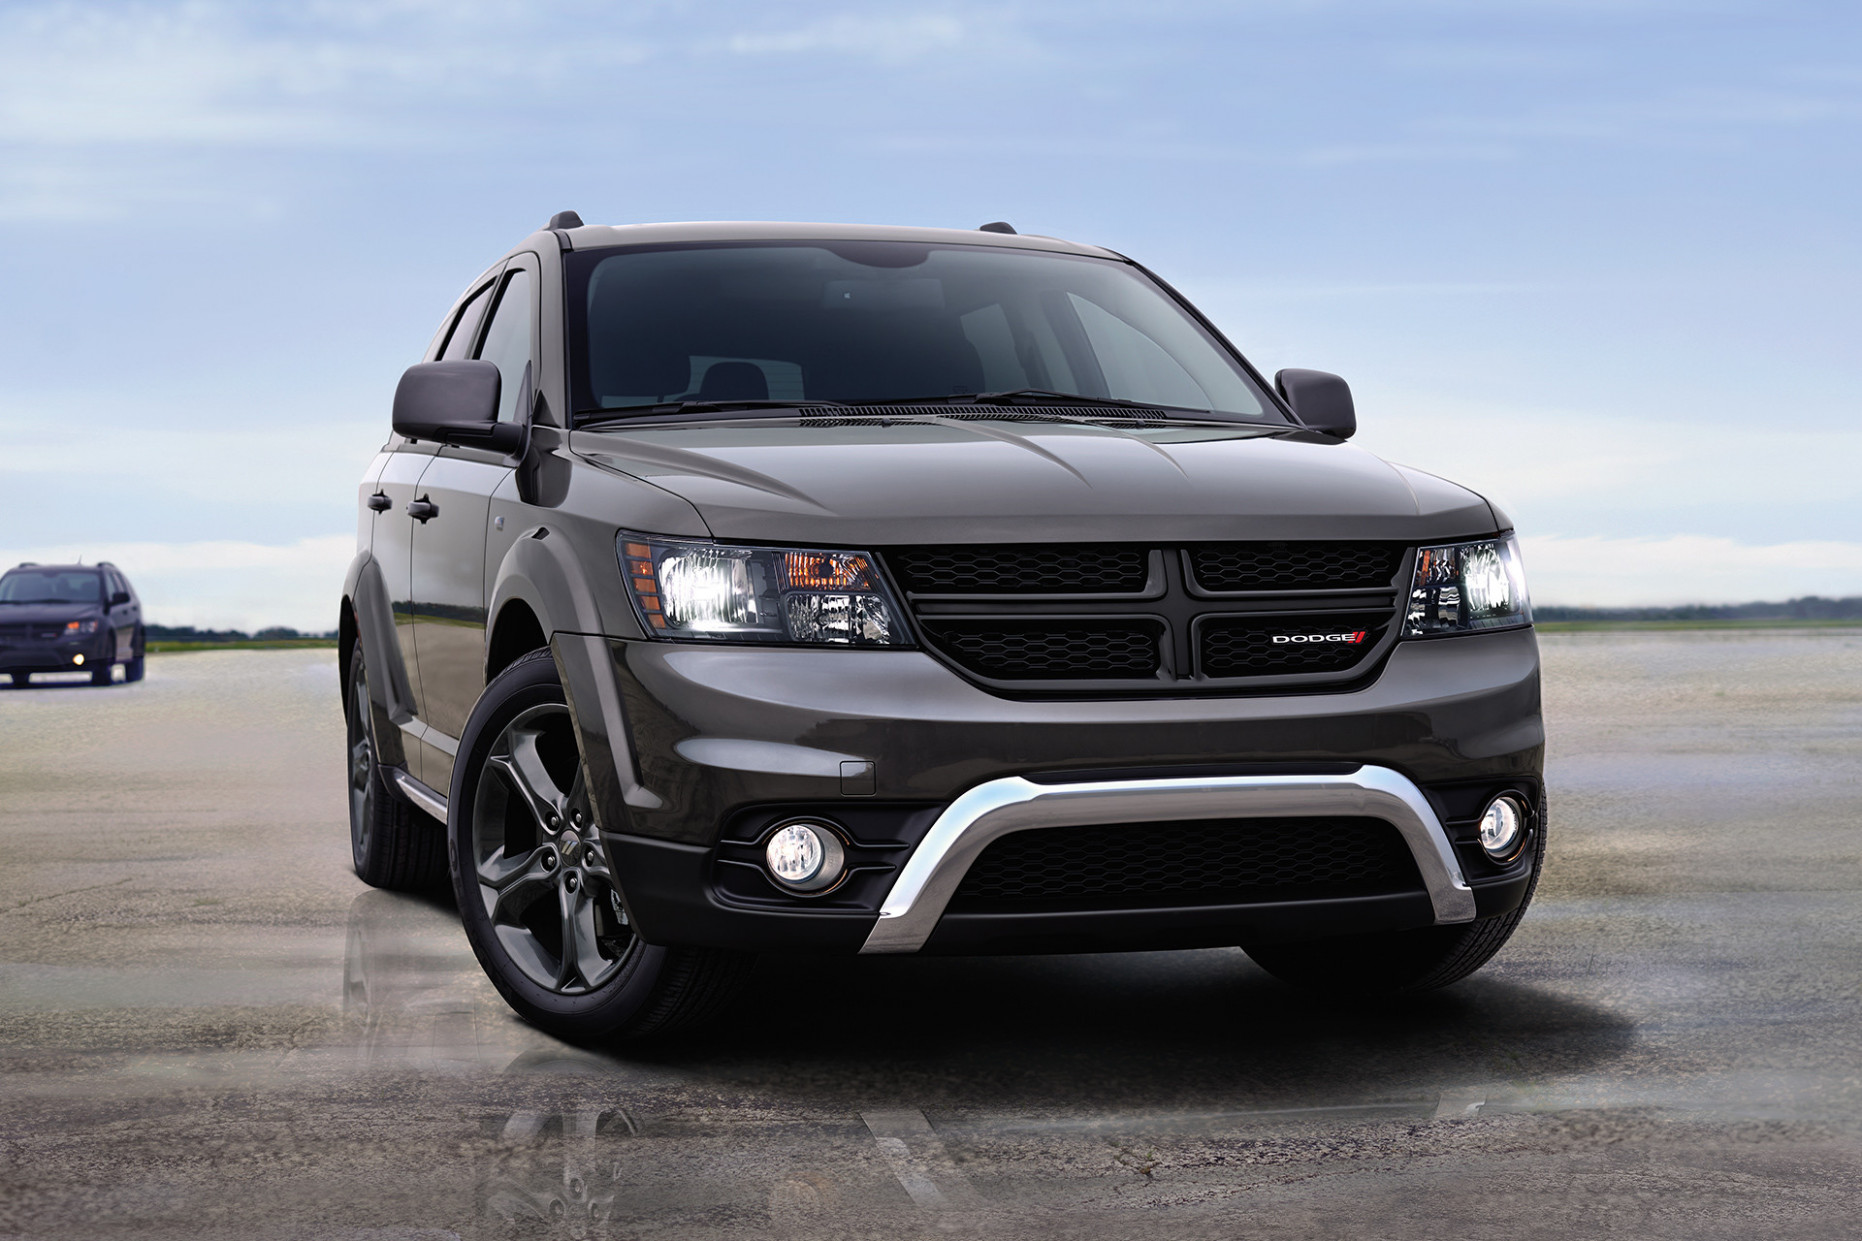 6 Dodge Journey - Crossover SUV | Dodge Canada